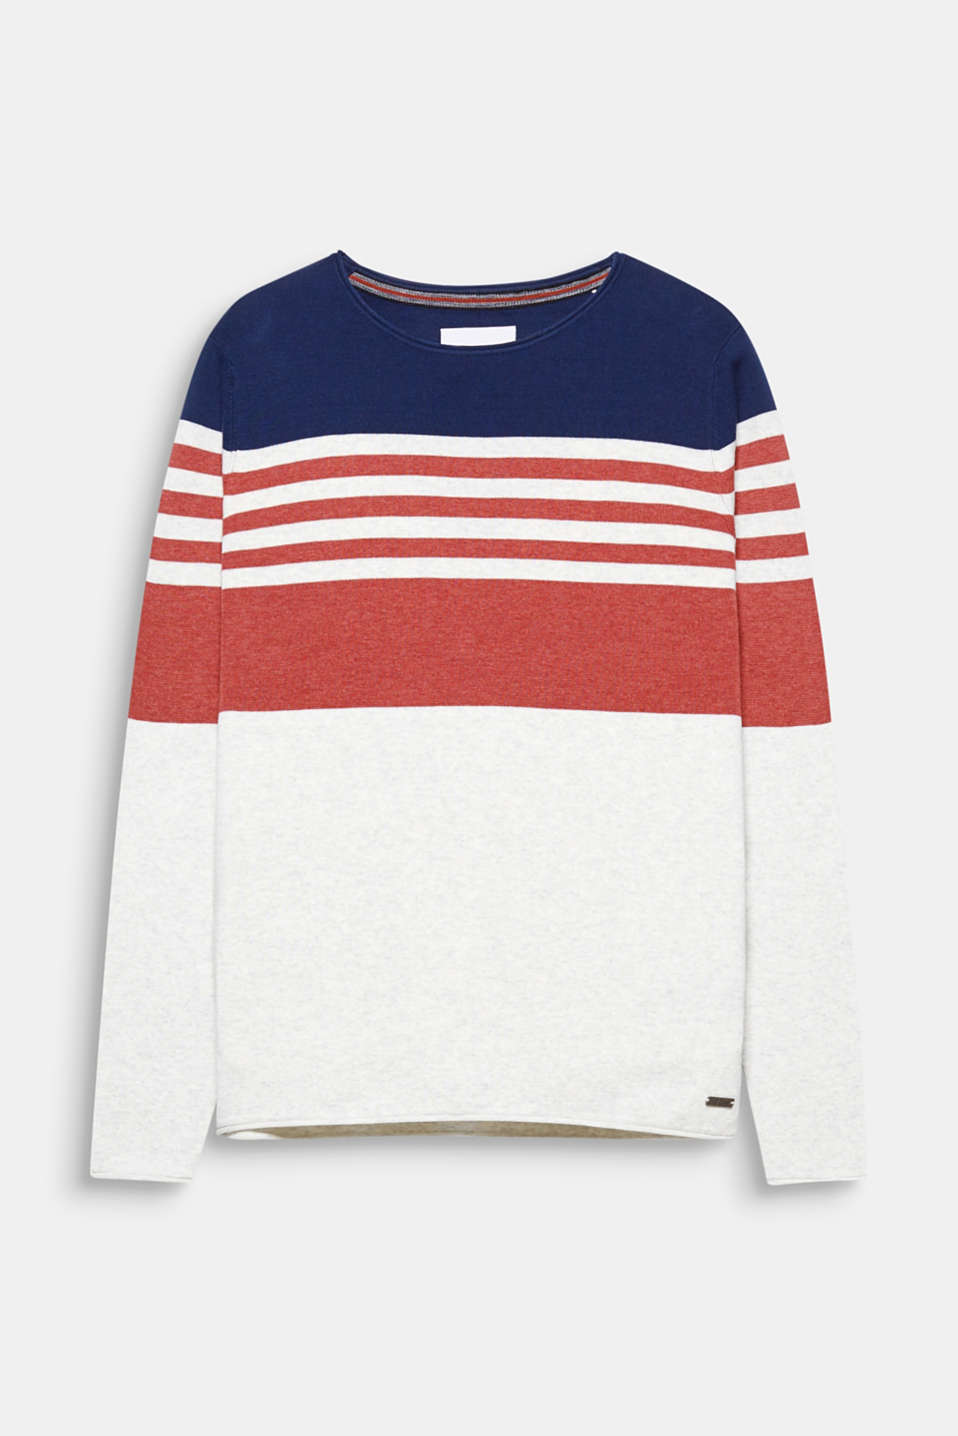 Block stripes in seasonal trend colours give this jumper a fashionable look.